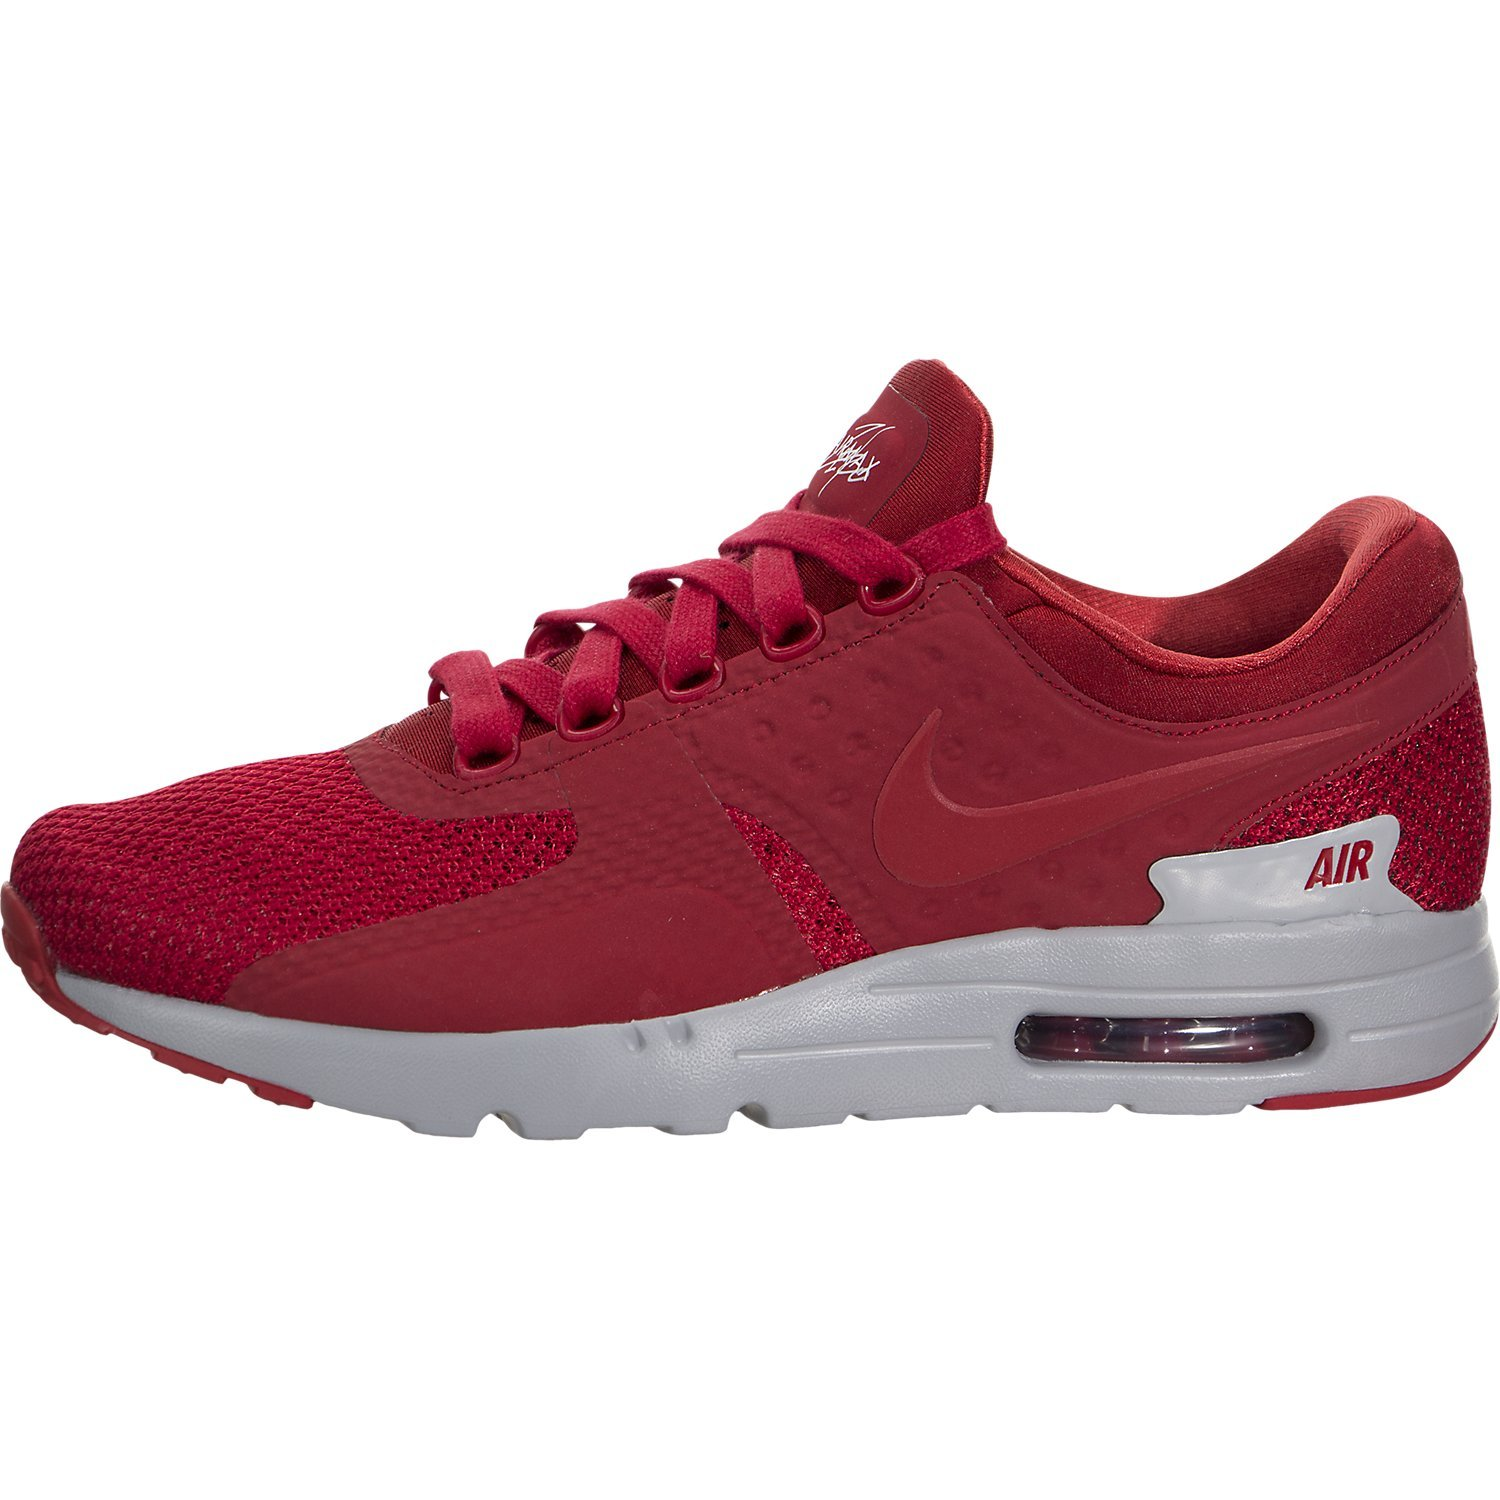 2c631bd1911 Galleon - NIKE Air Max Zero Premium